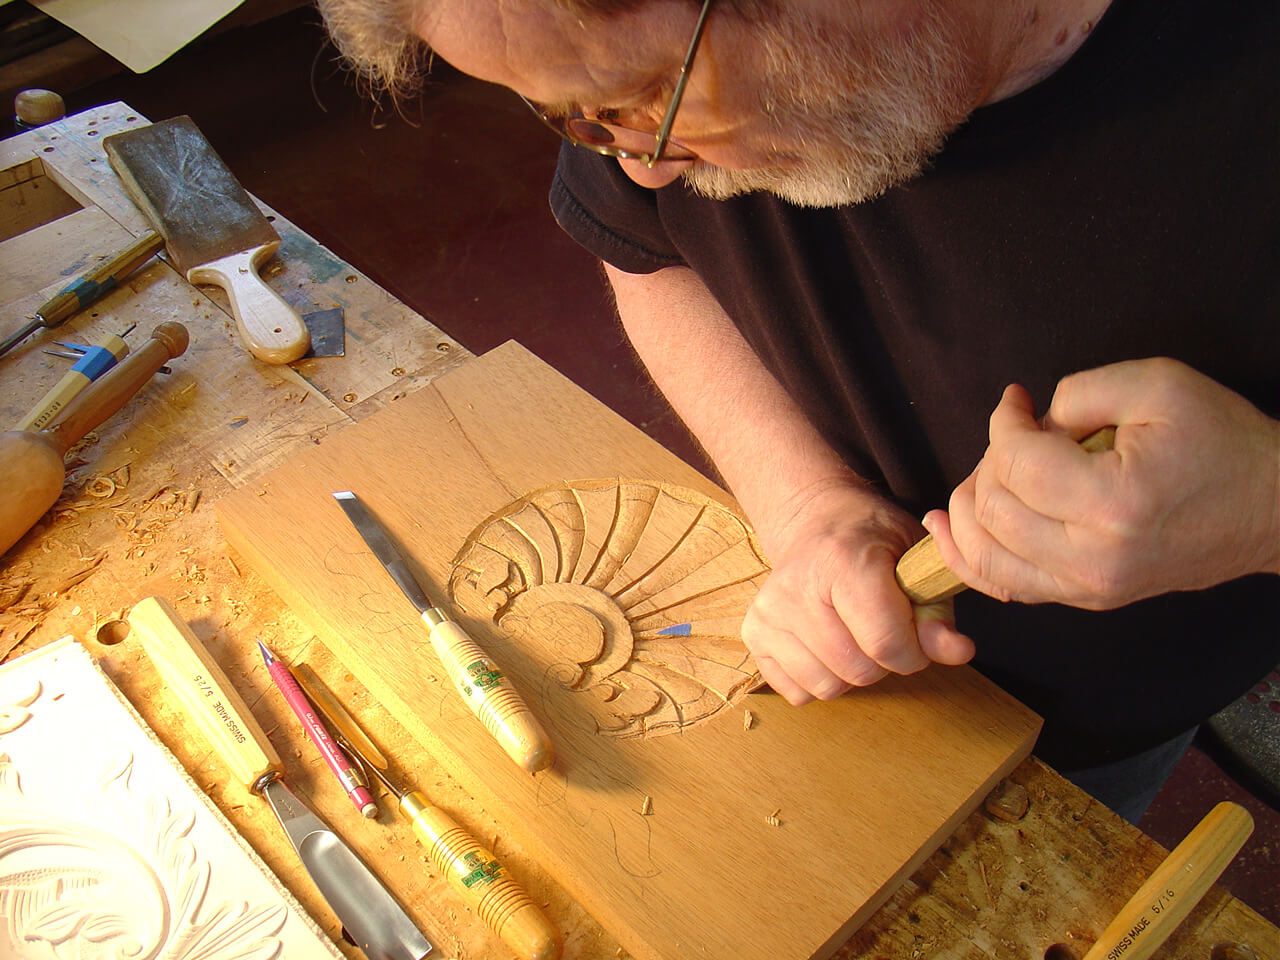 How to Use Wood Carving Tools